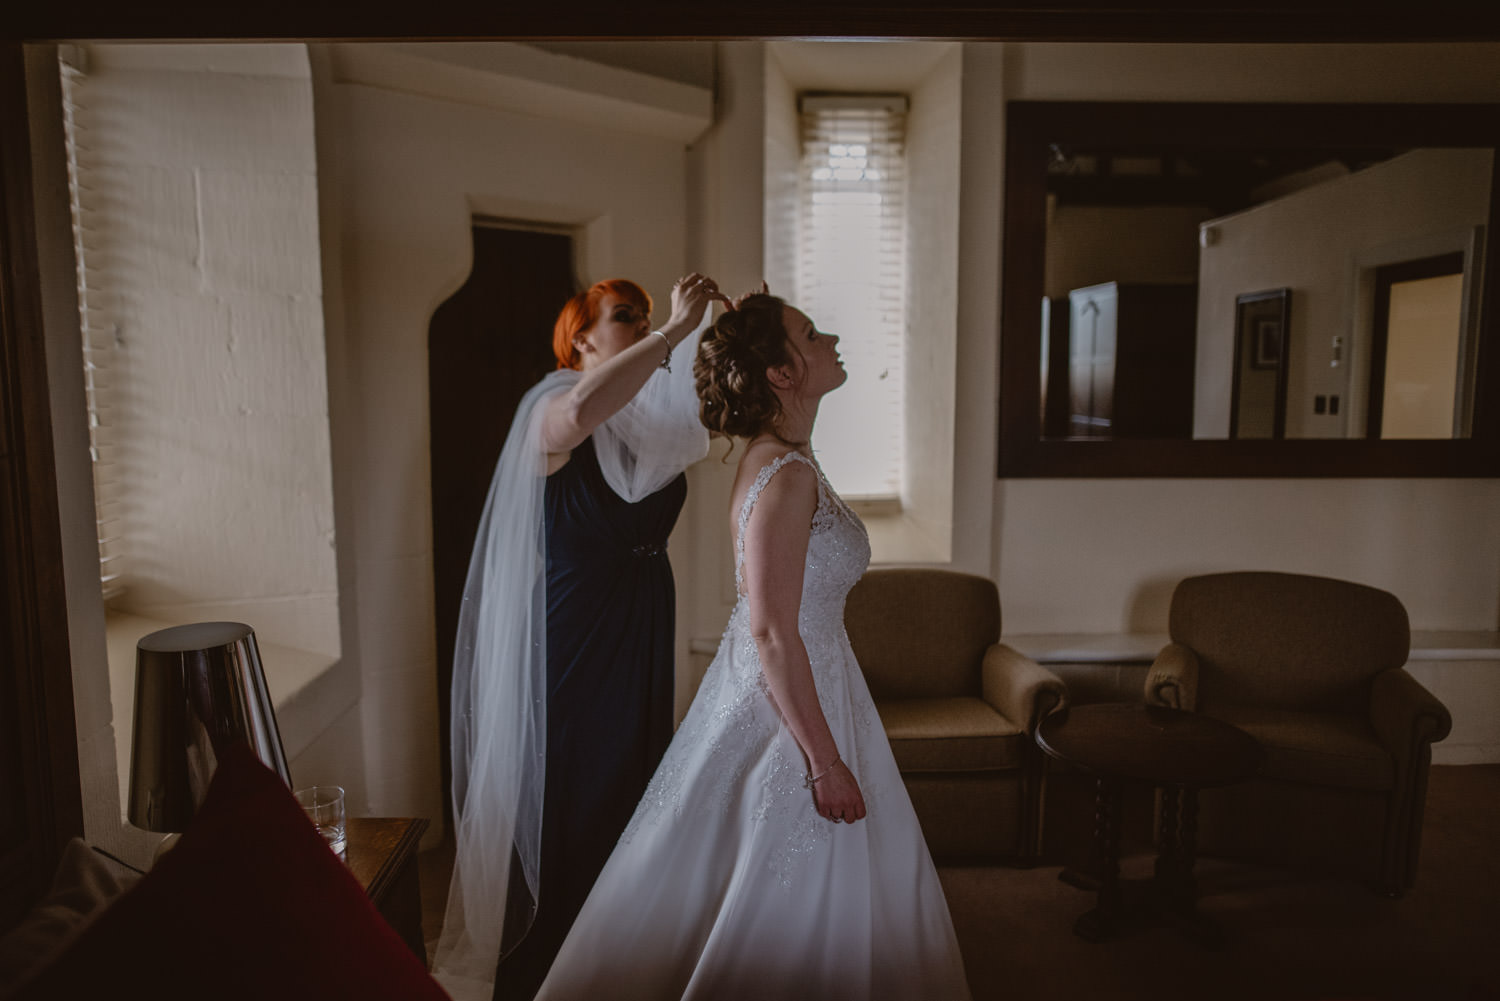 Bridesmaid putting the veil on the bride for her wedding in Peckforton Castle